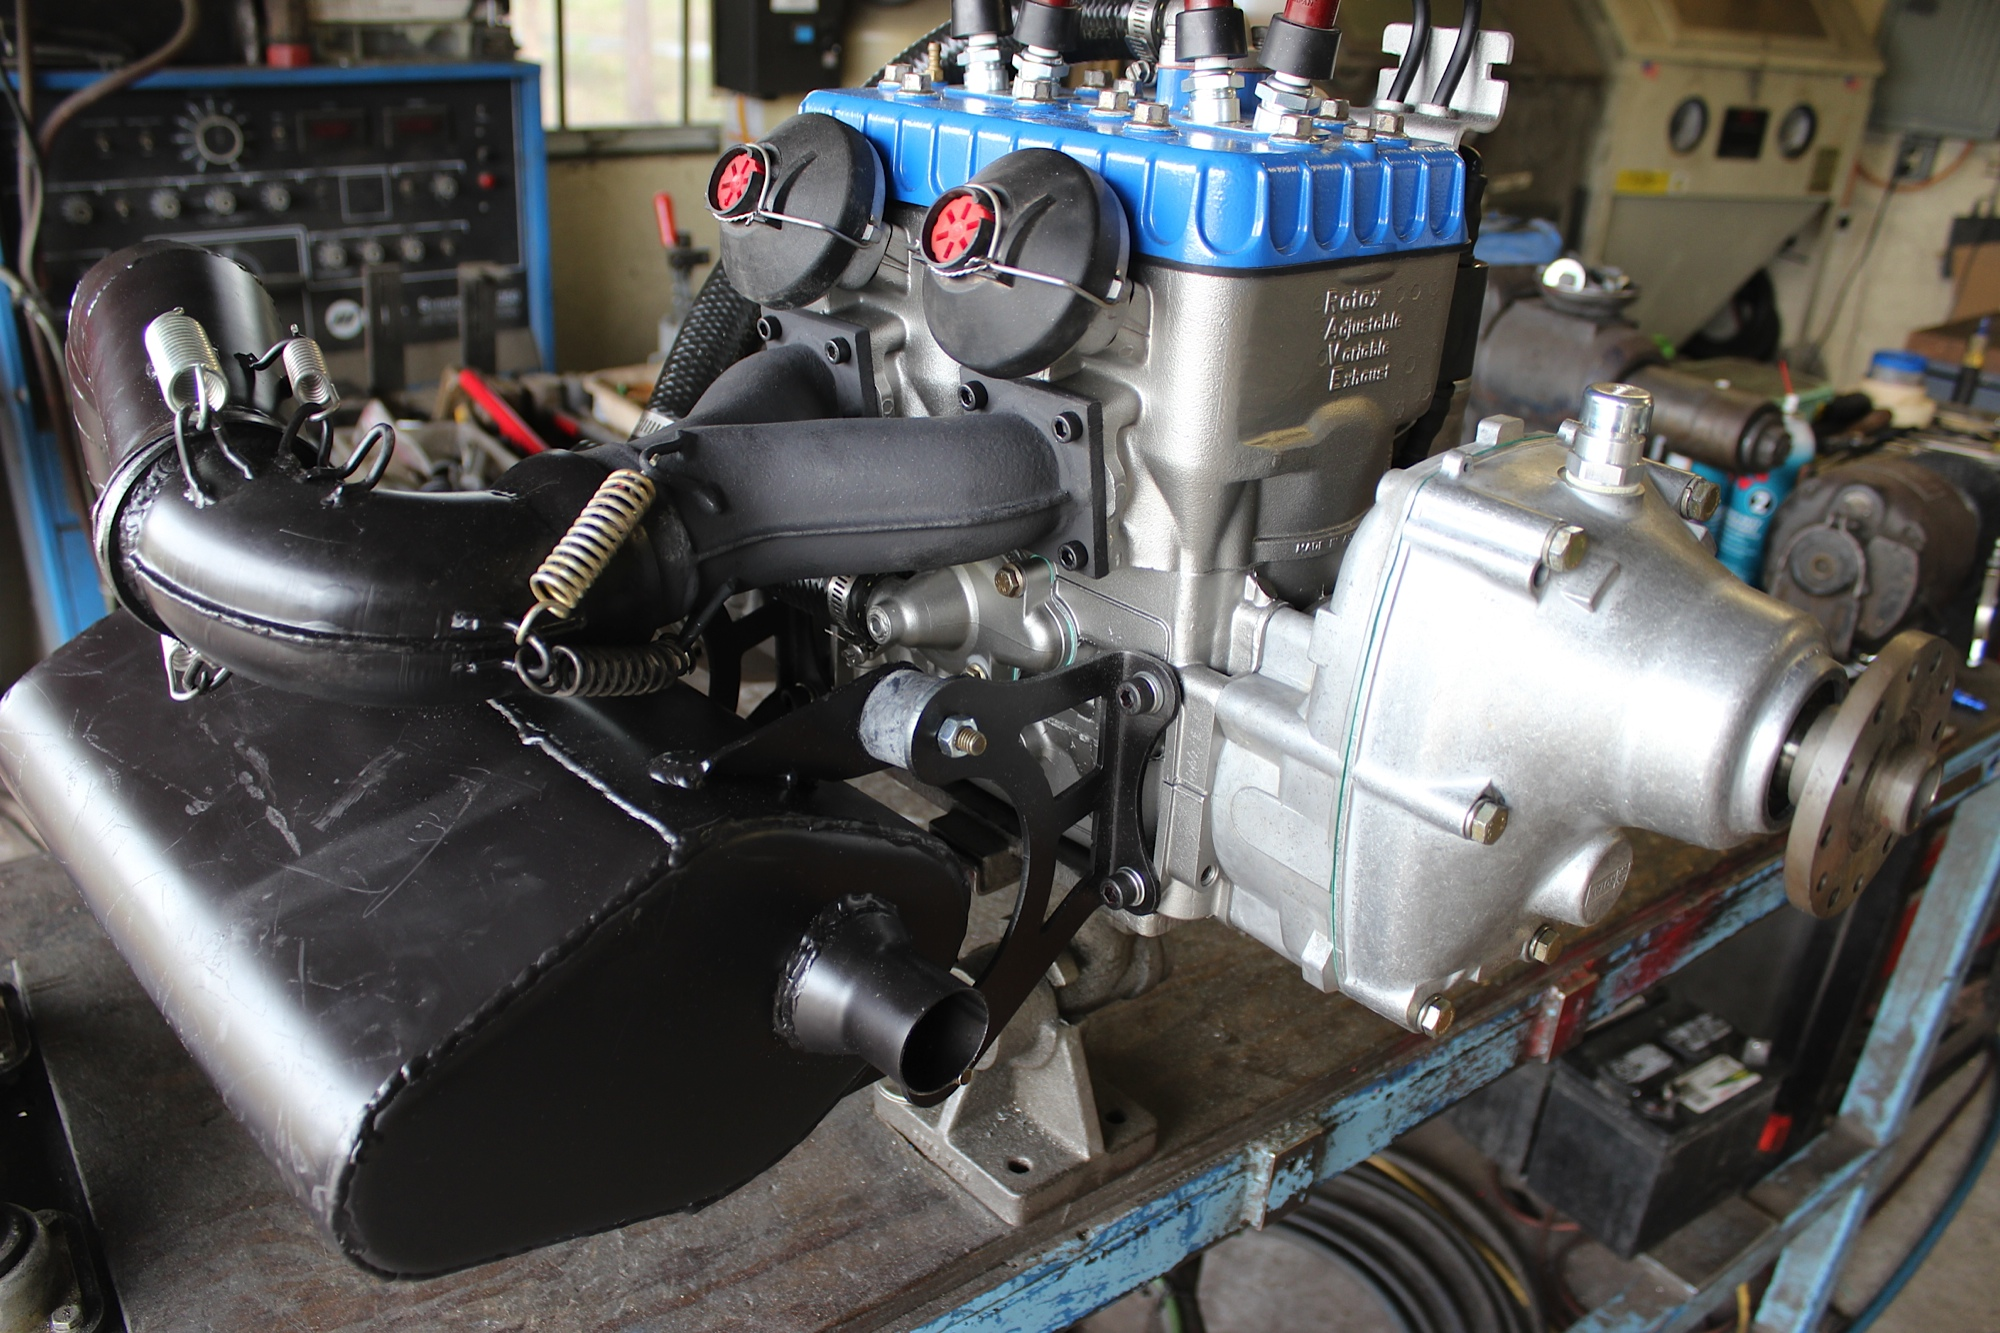 How to reduce the cost of overhauling the engine